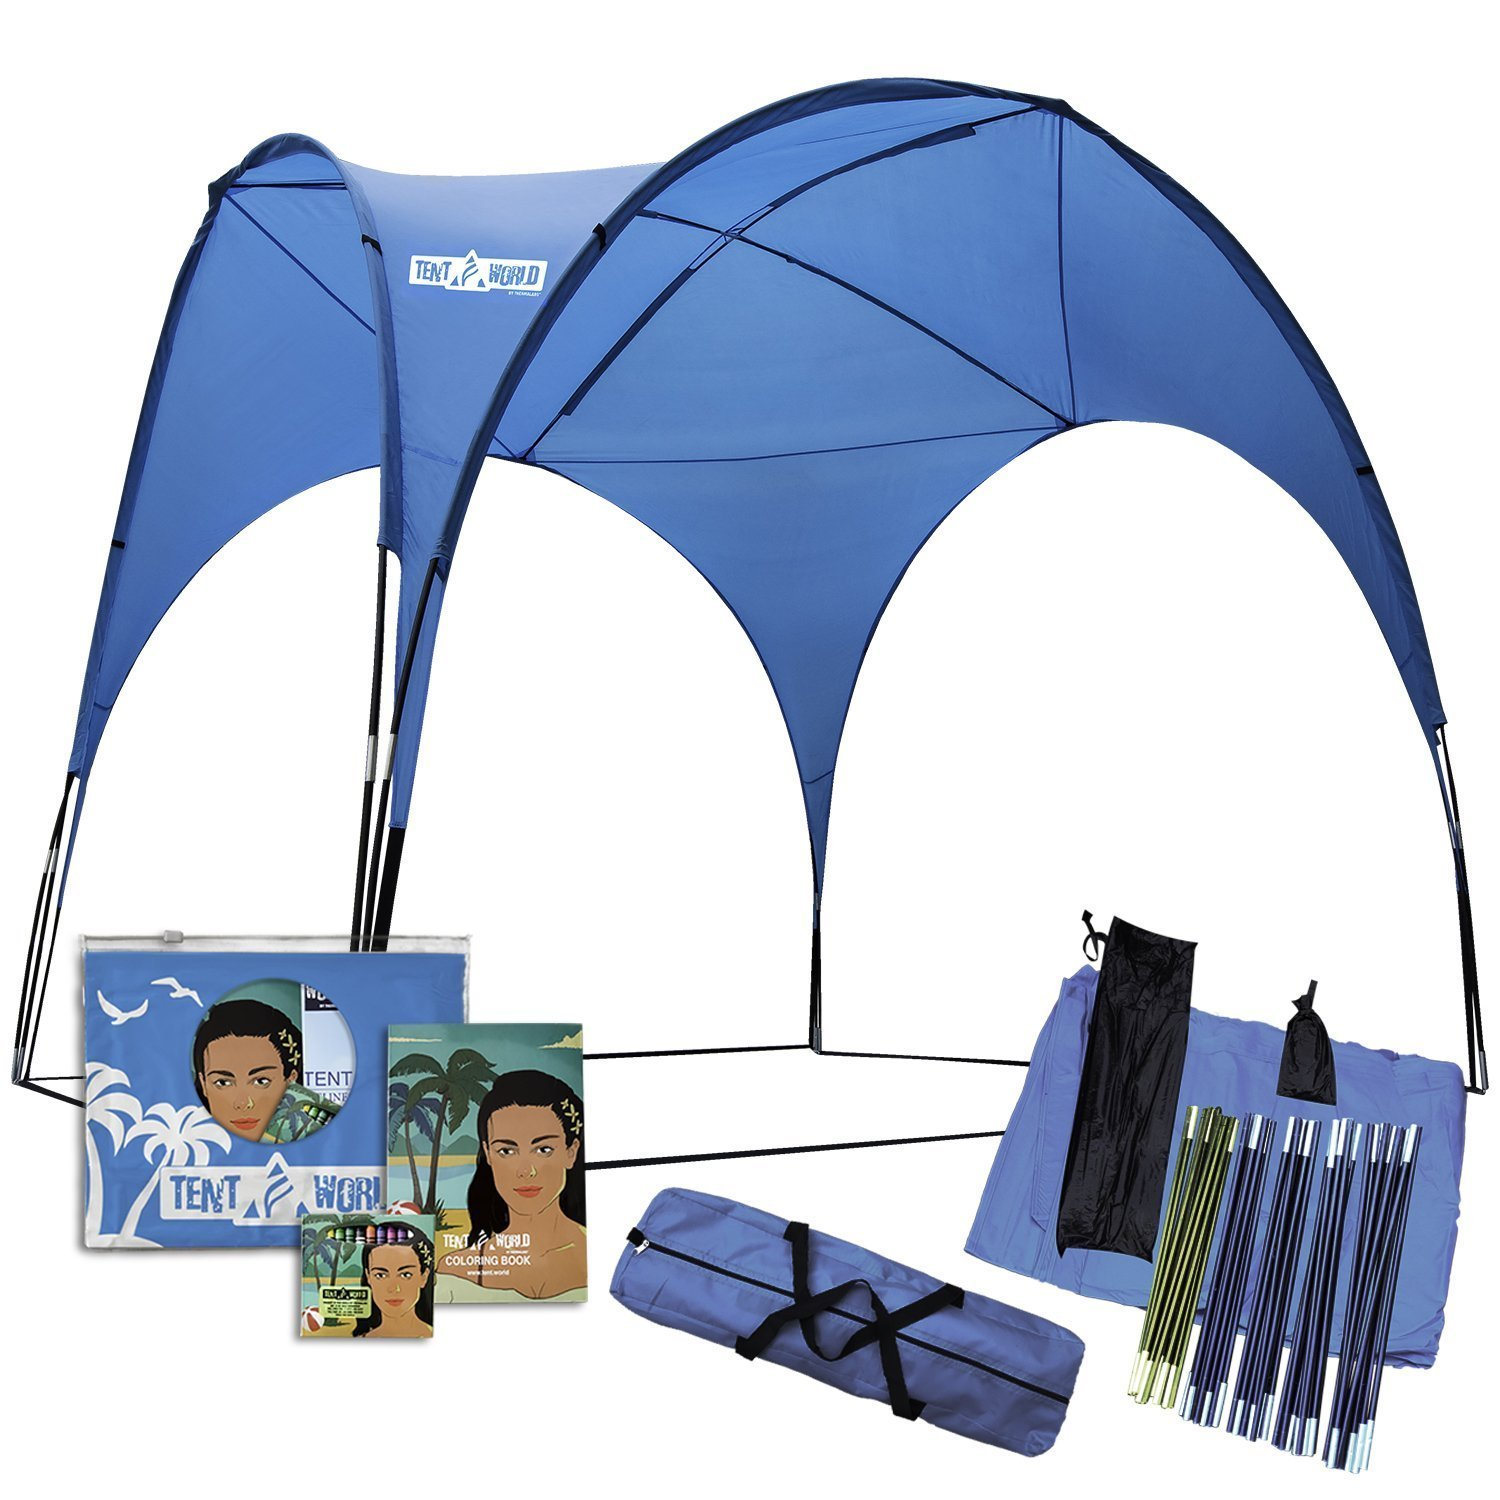 Huge Beach Tent: Shades Over 12 People! Easy Up Canopy, UV Protection Gazebo Roof. Shade Shelter Awning for Outdoor Parties, Camping, Sport Event, Patios. Steel Frame Patio Gazebos, Party Cabana Tents